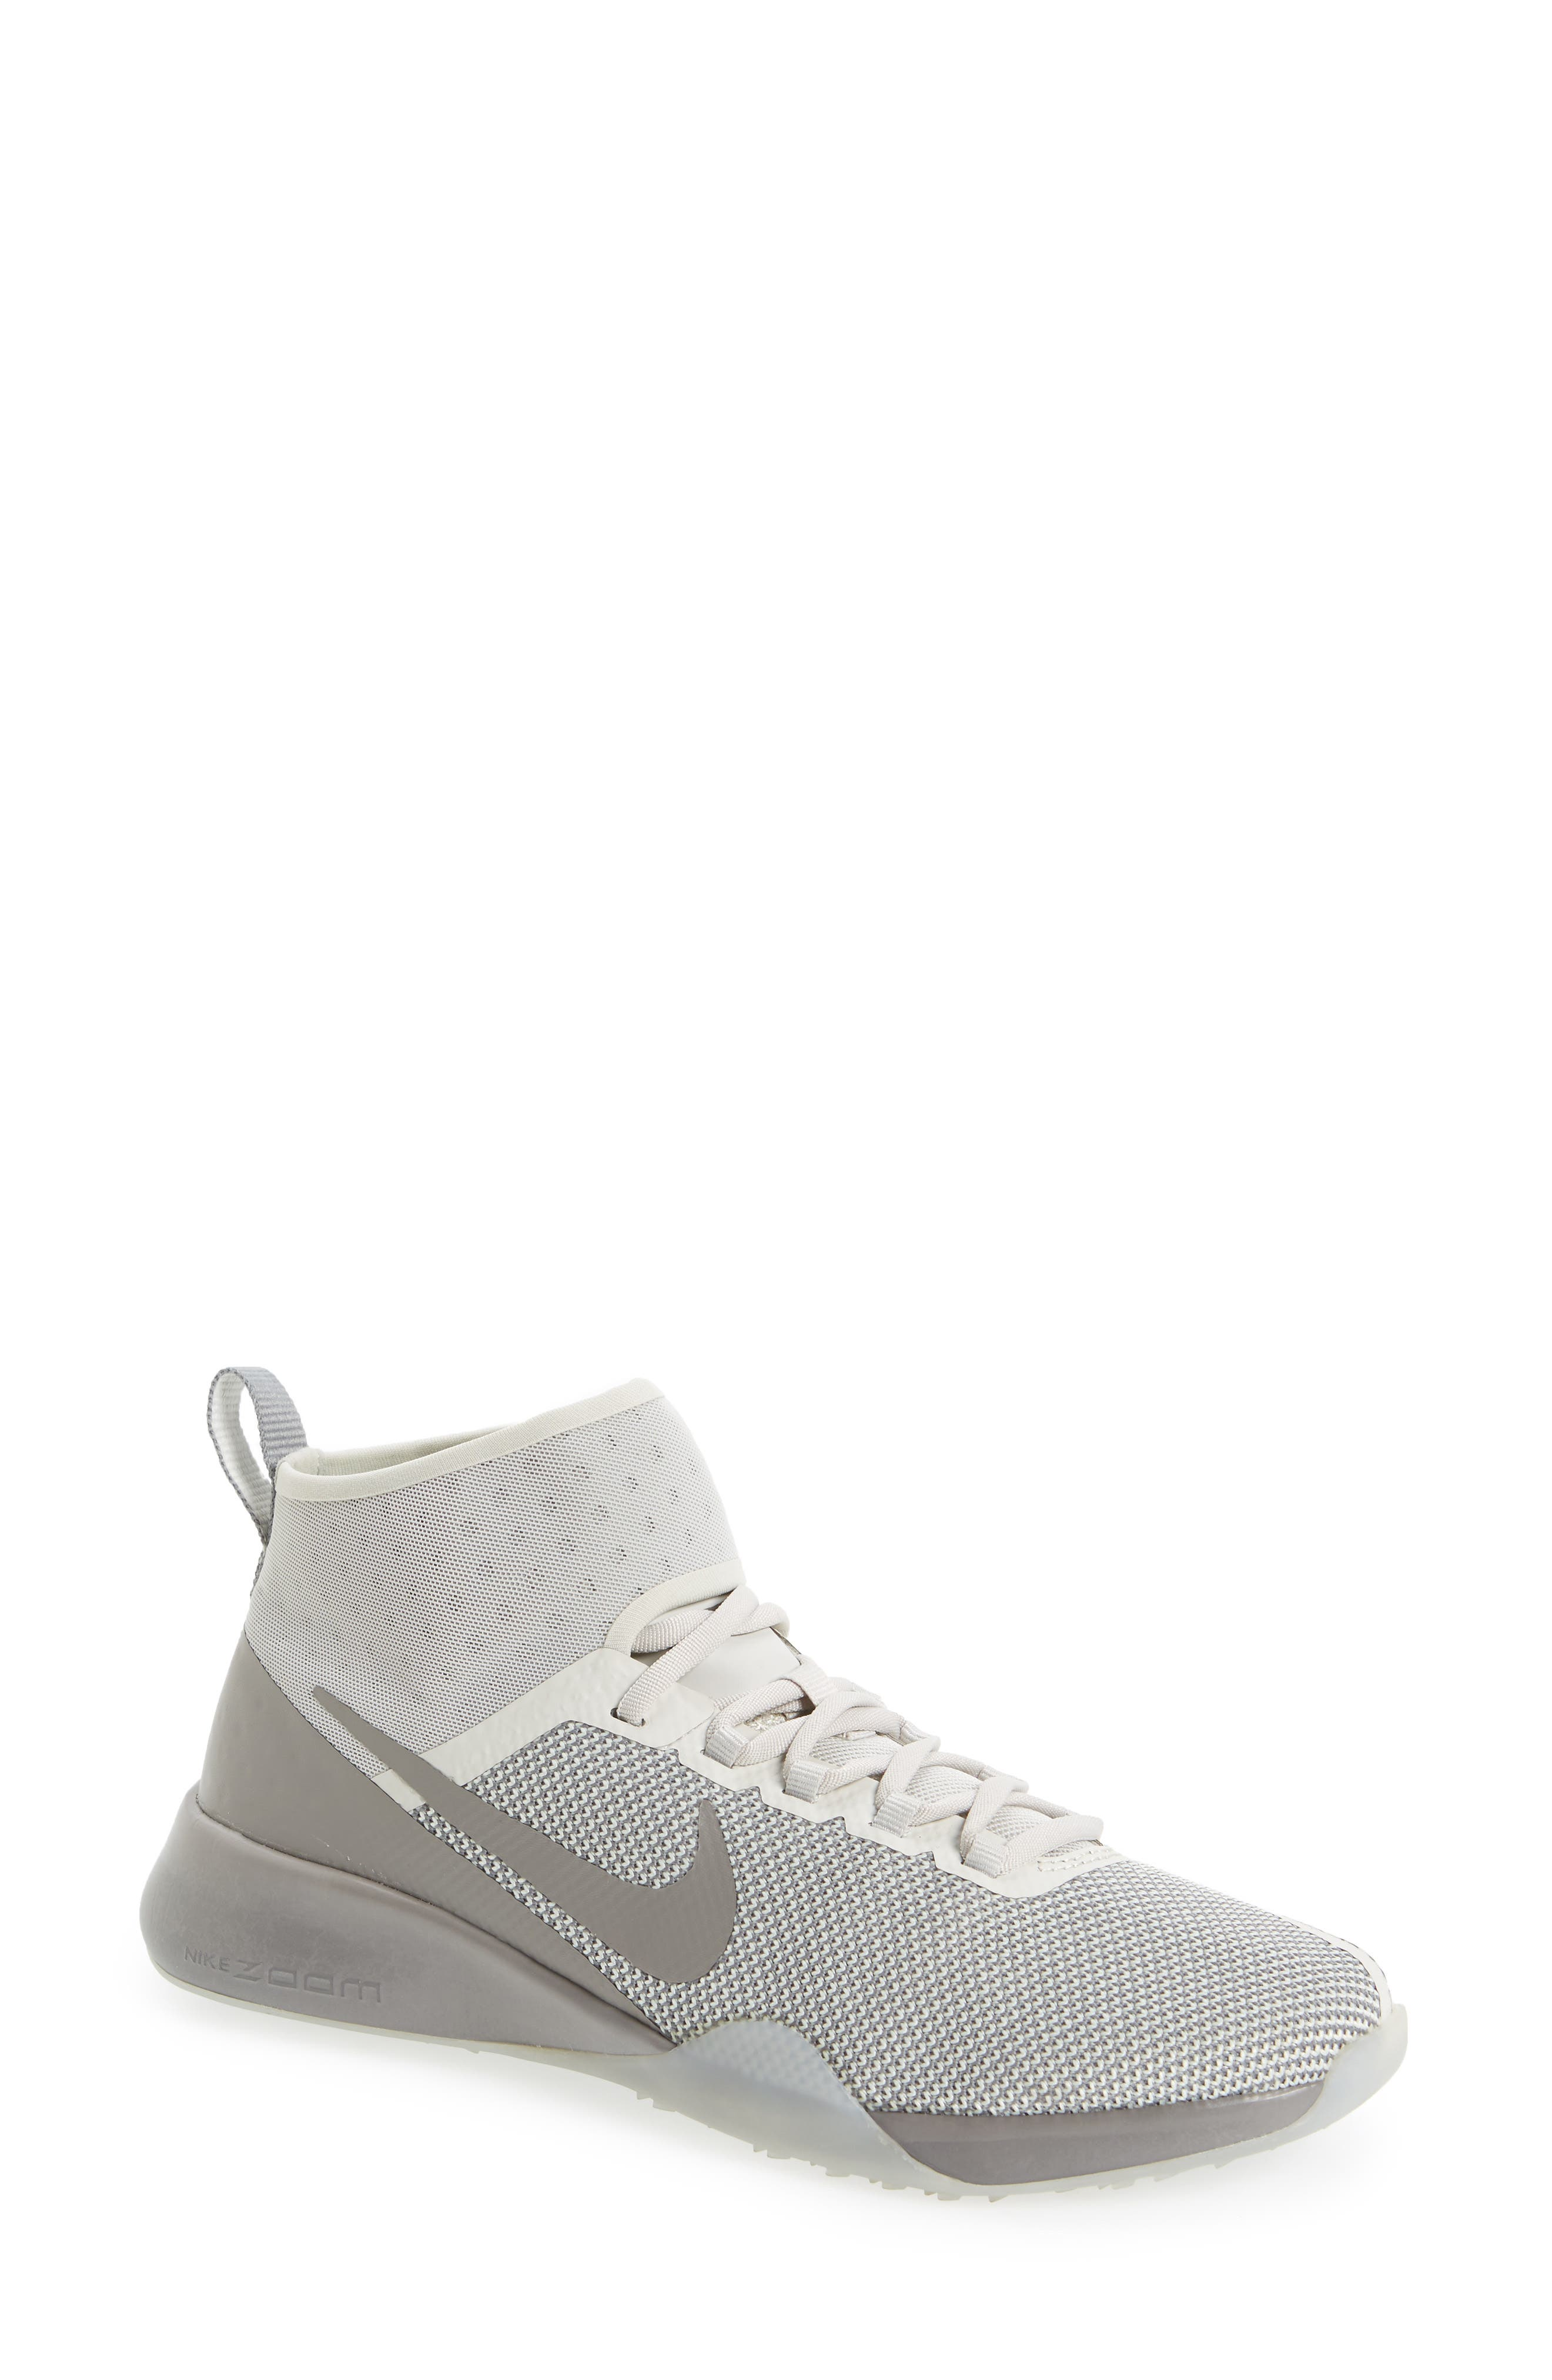 Alternate Image 1 Selected - Nike NikeLab Air Zoom Strong 2 Training Shoe (Women)